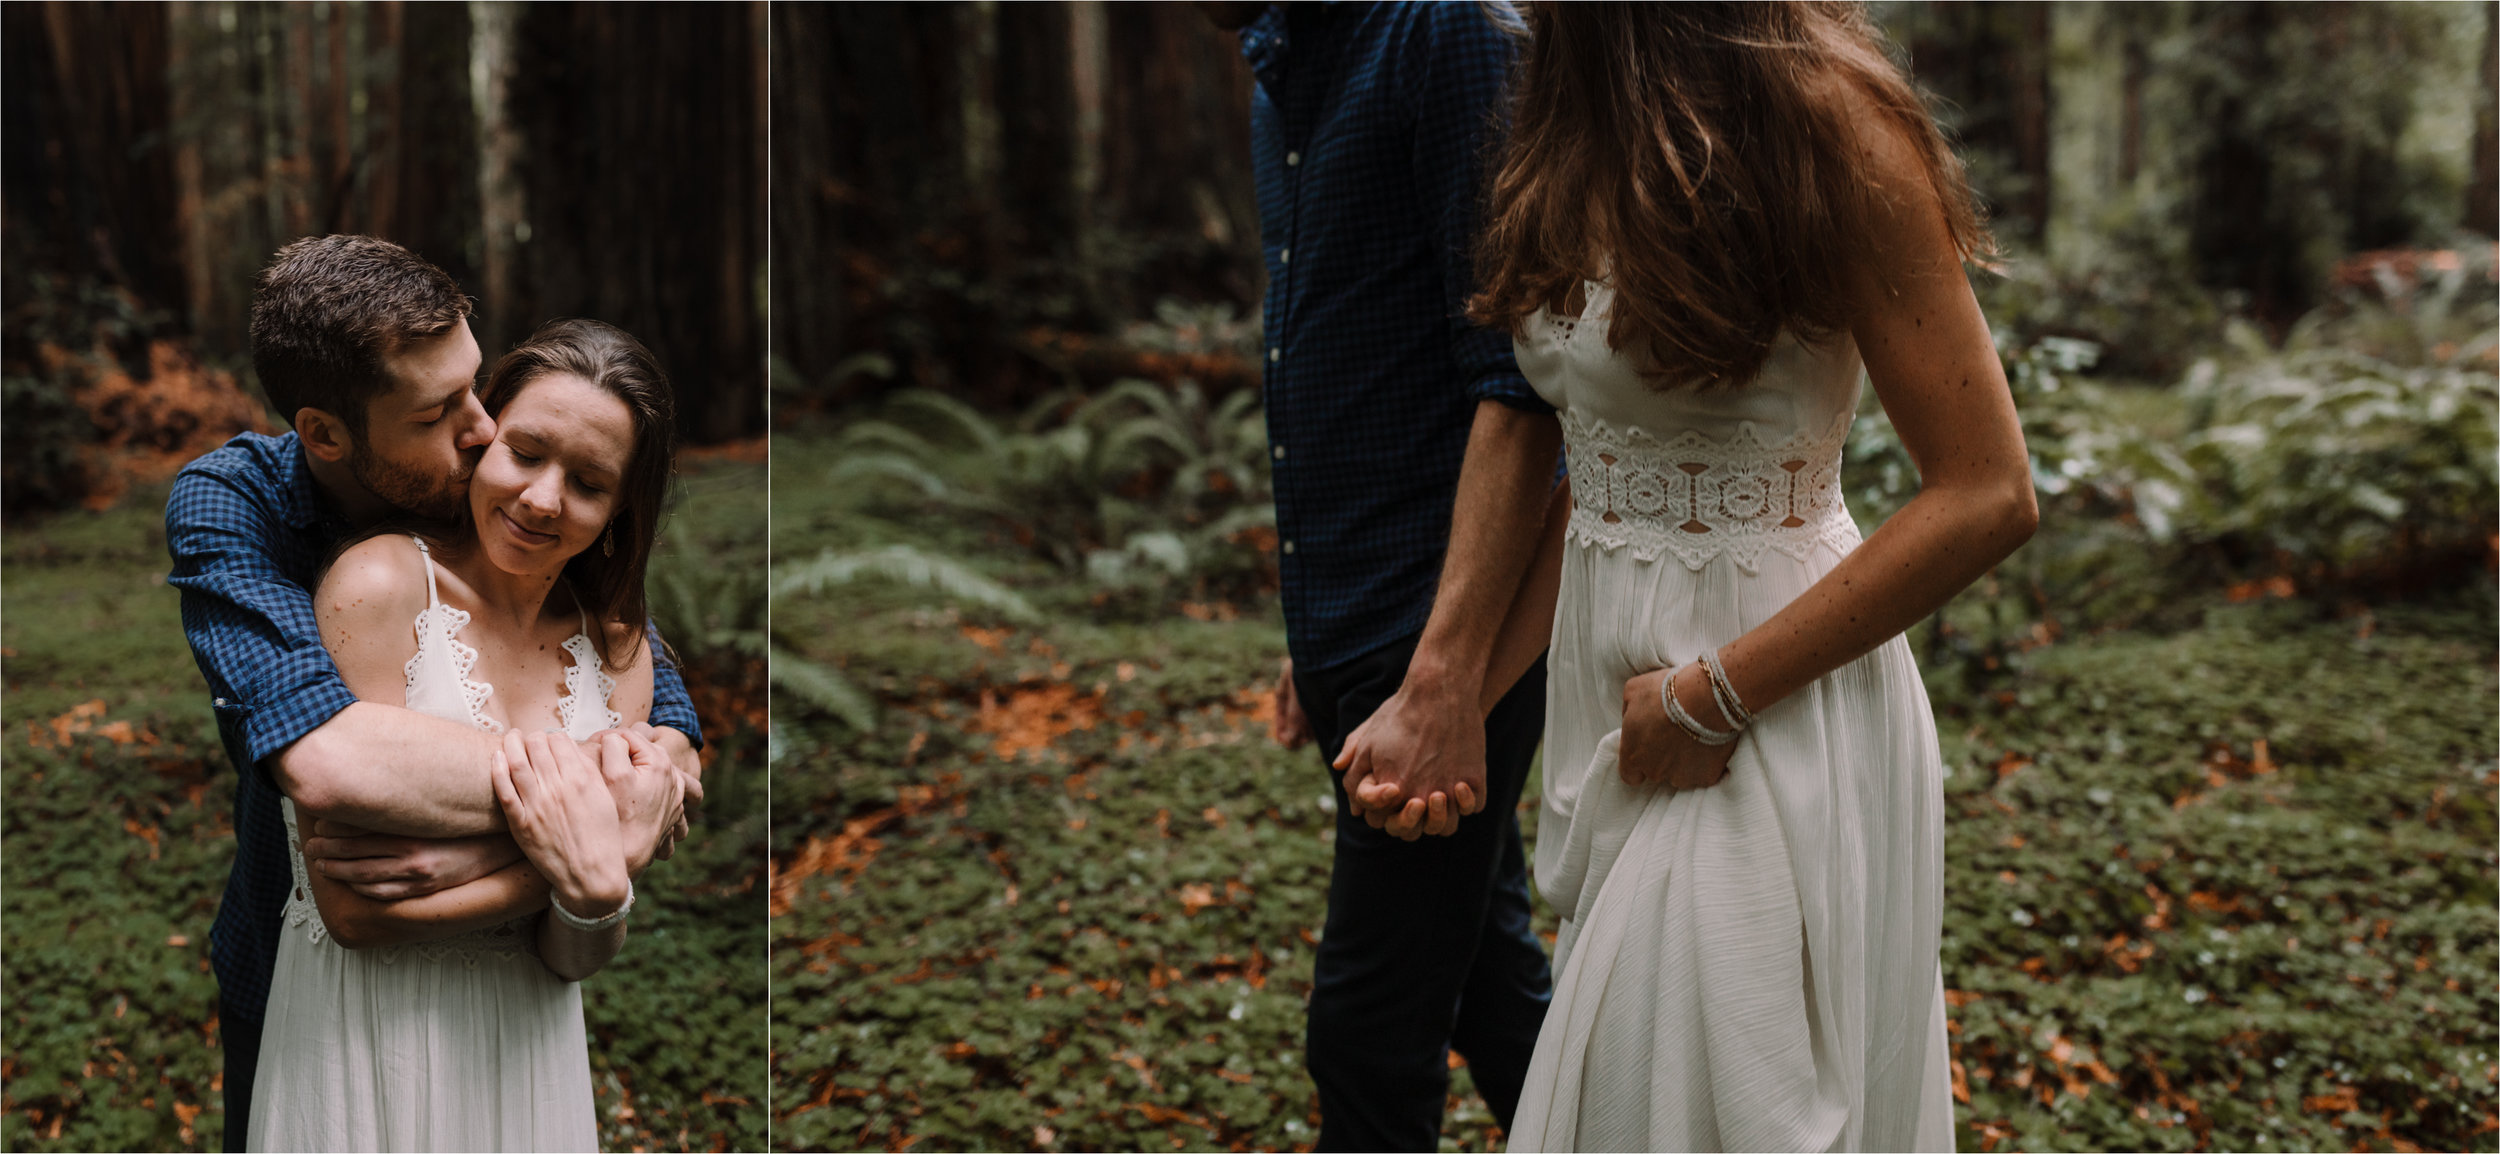 barbara o photography redwoods california elopement dc baltimore nyc photographer.jpg